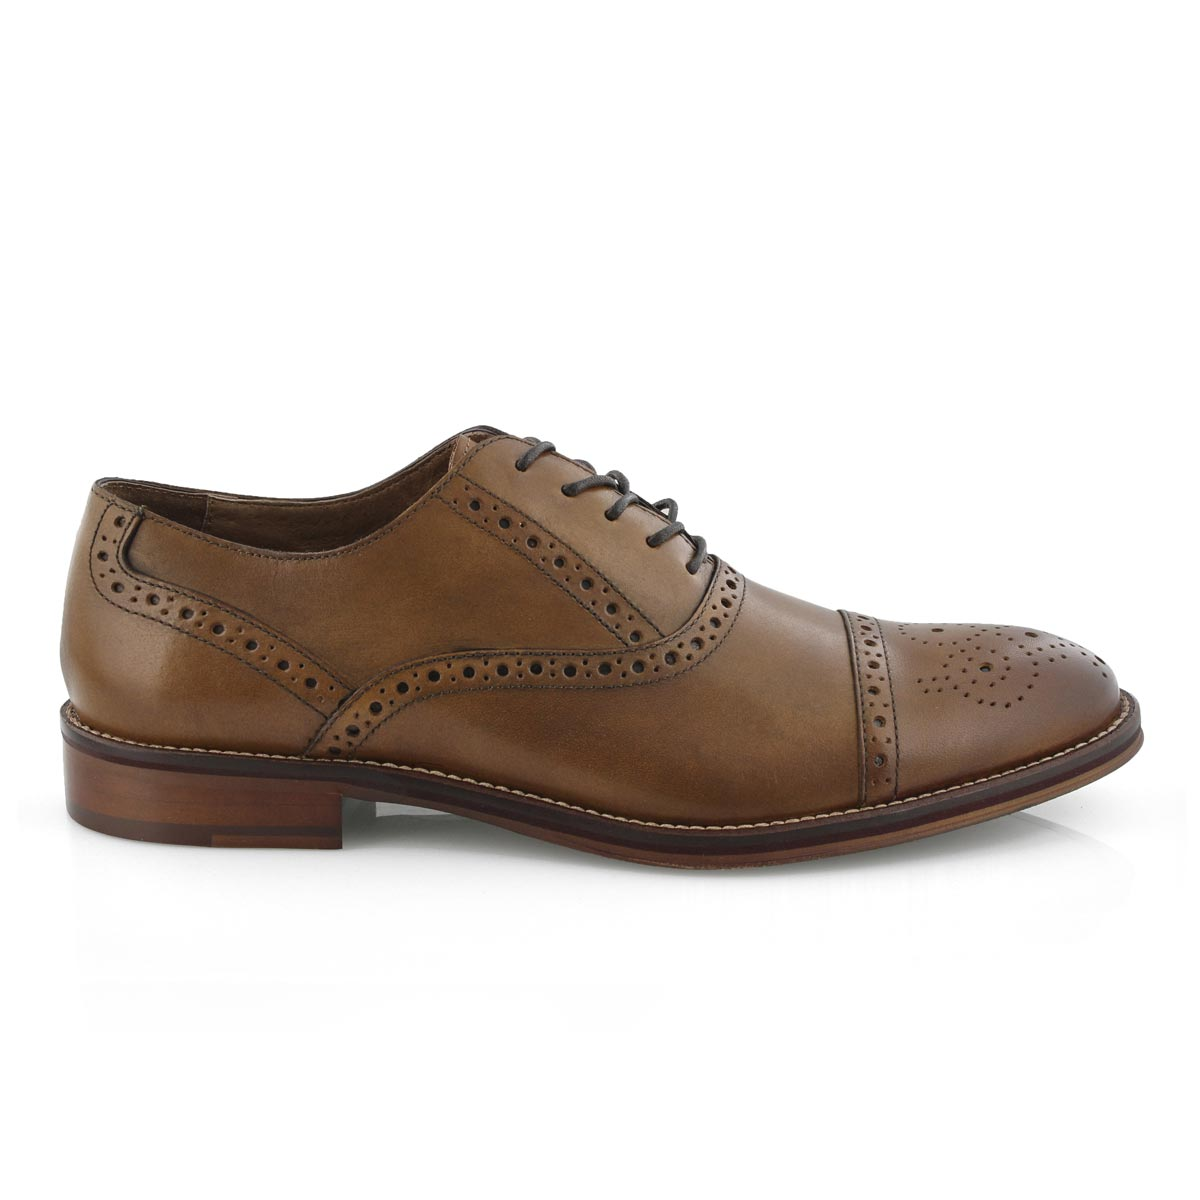 Mns Conard Cap Toe tan dress oxford